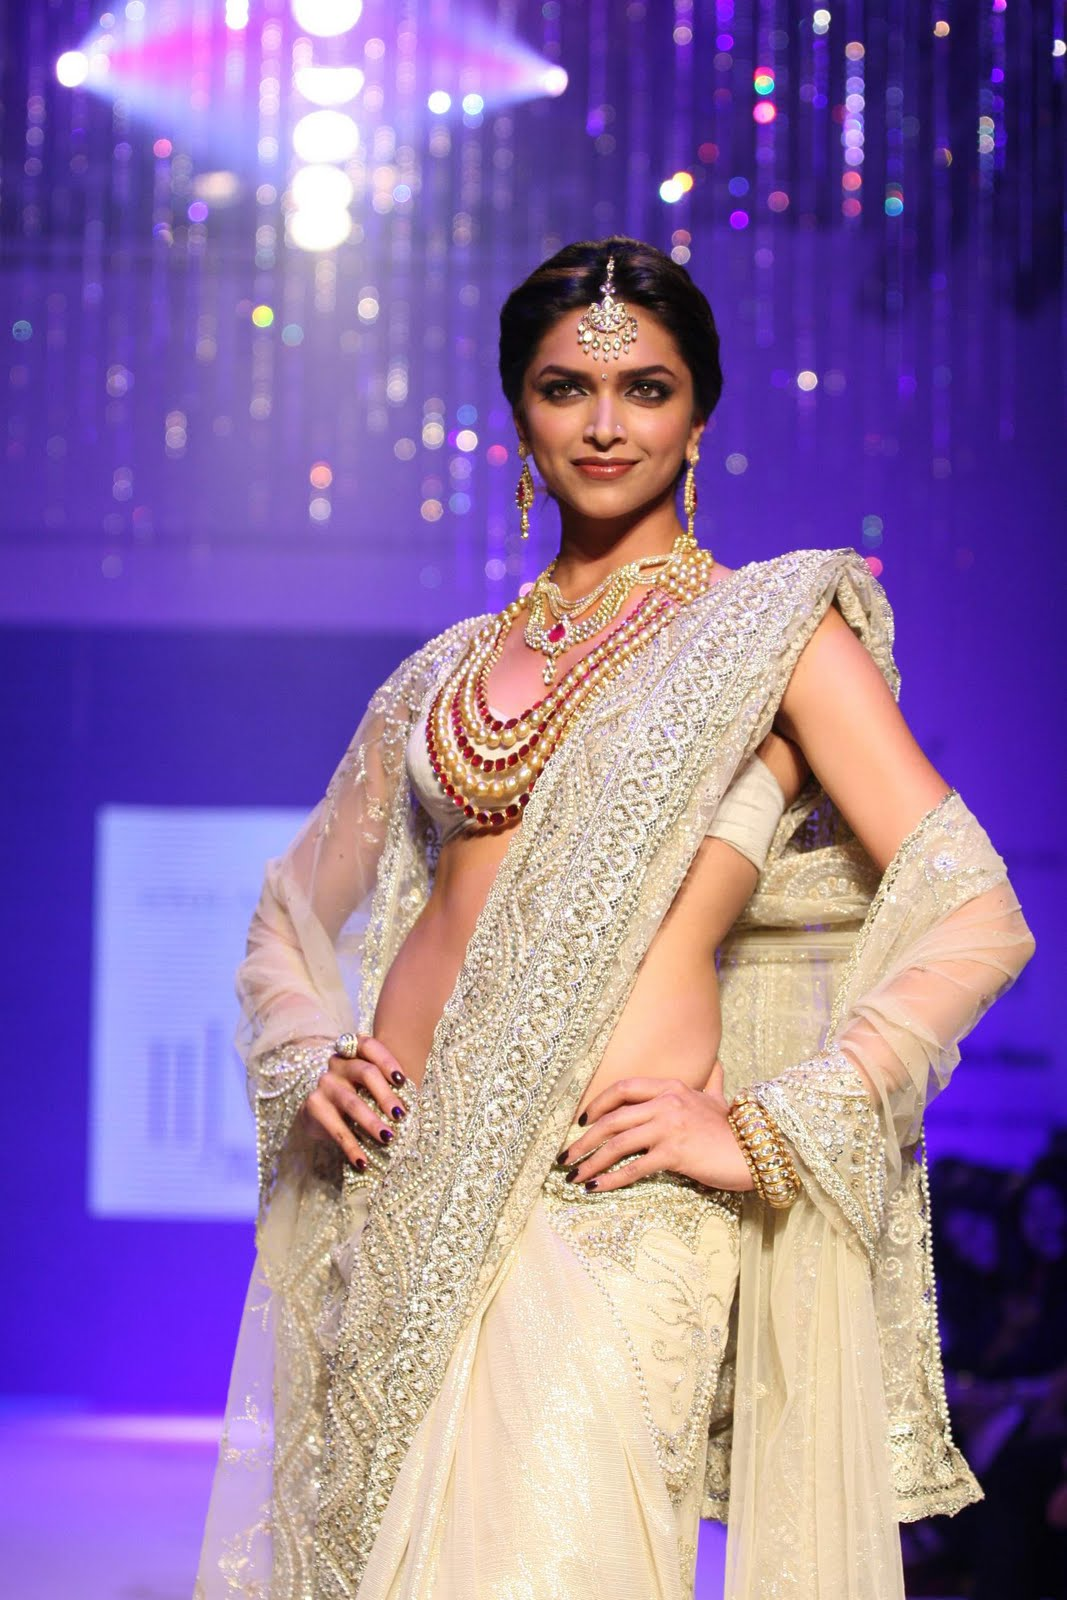 Hairstyle For You: Deepika Padukone In Wedding Dresses